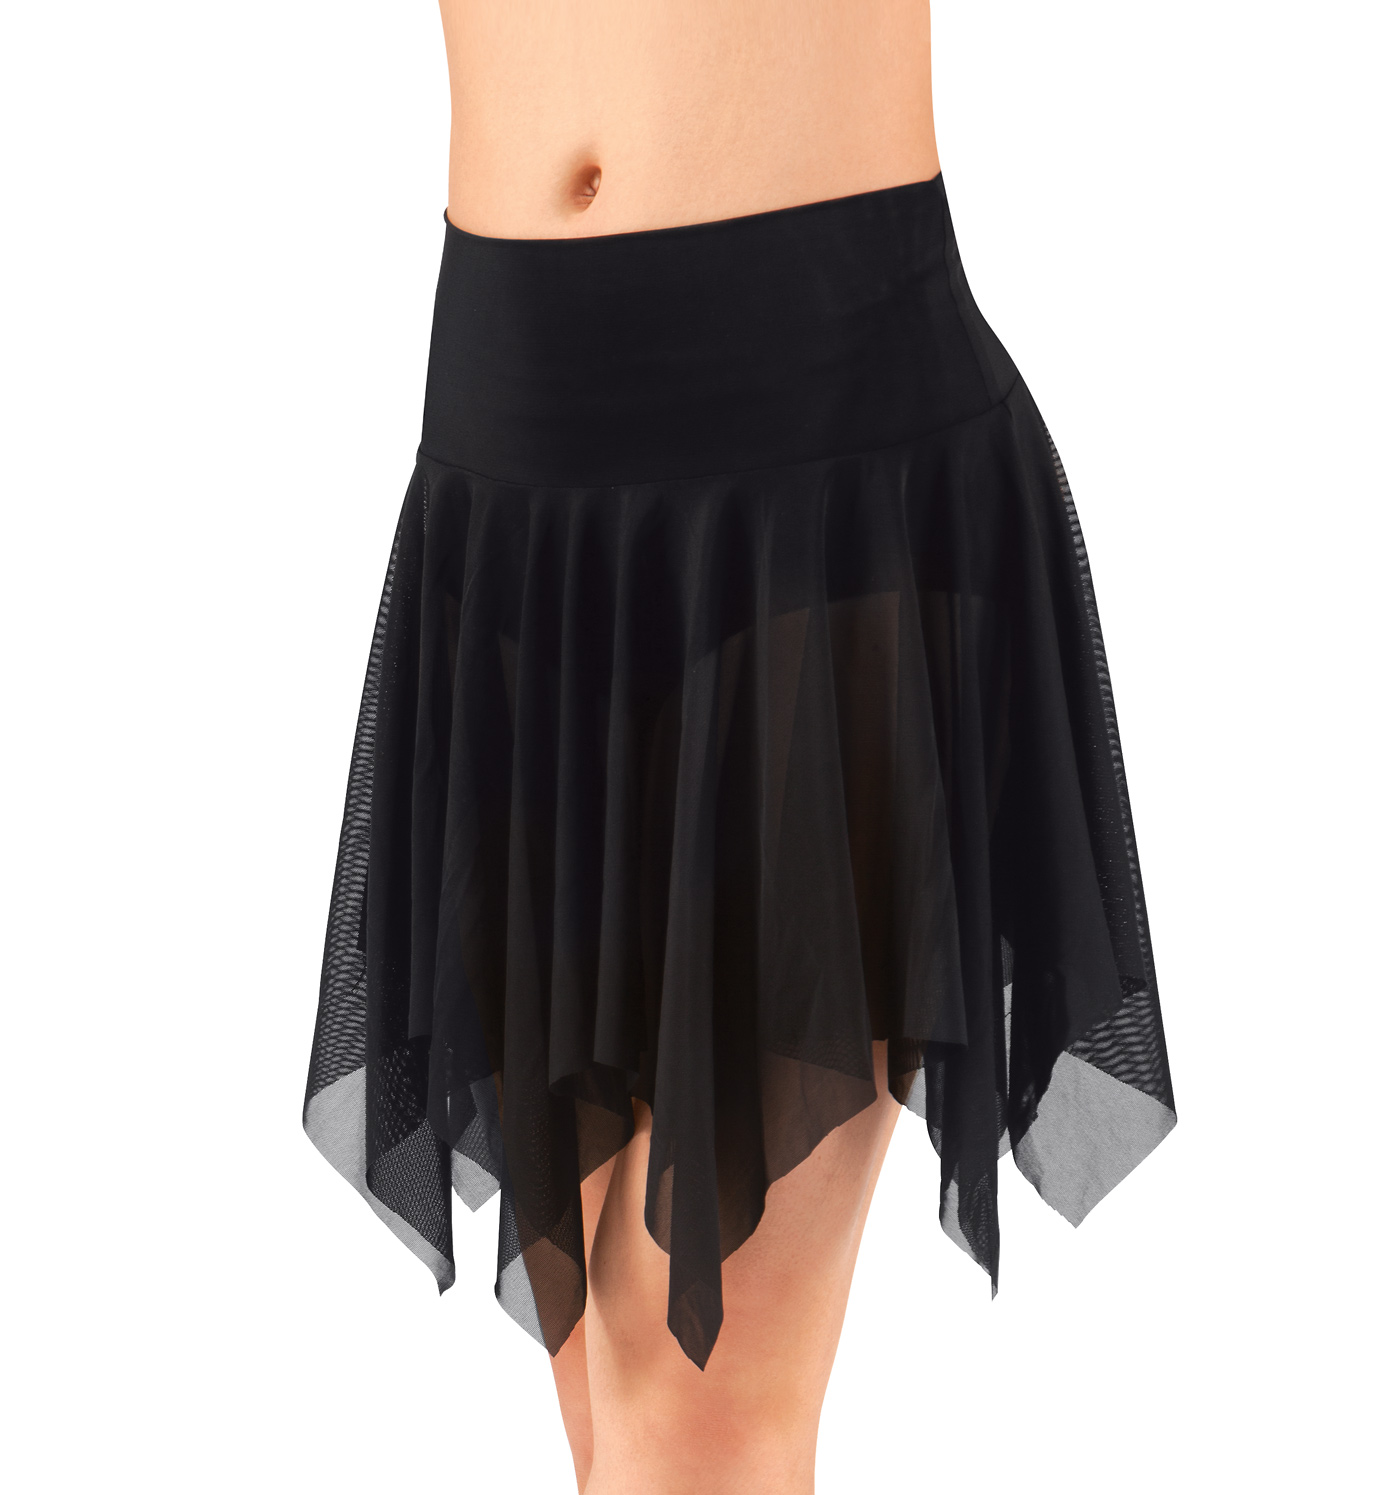 Image of Adult Mesh Handkerchief Dance Skirt